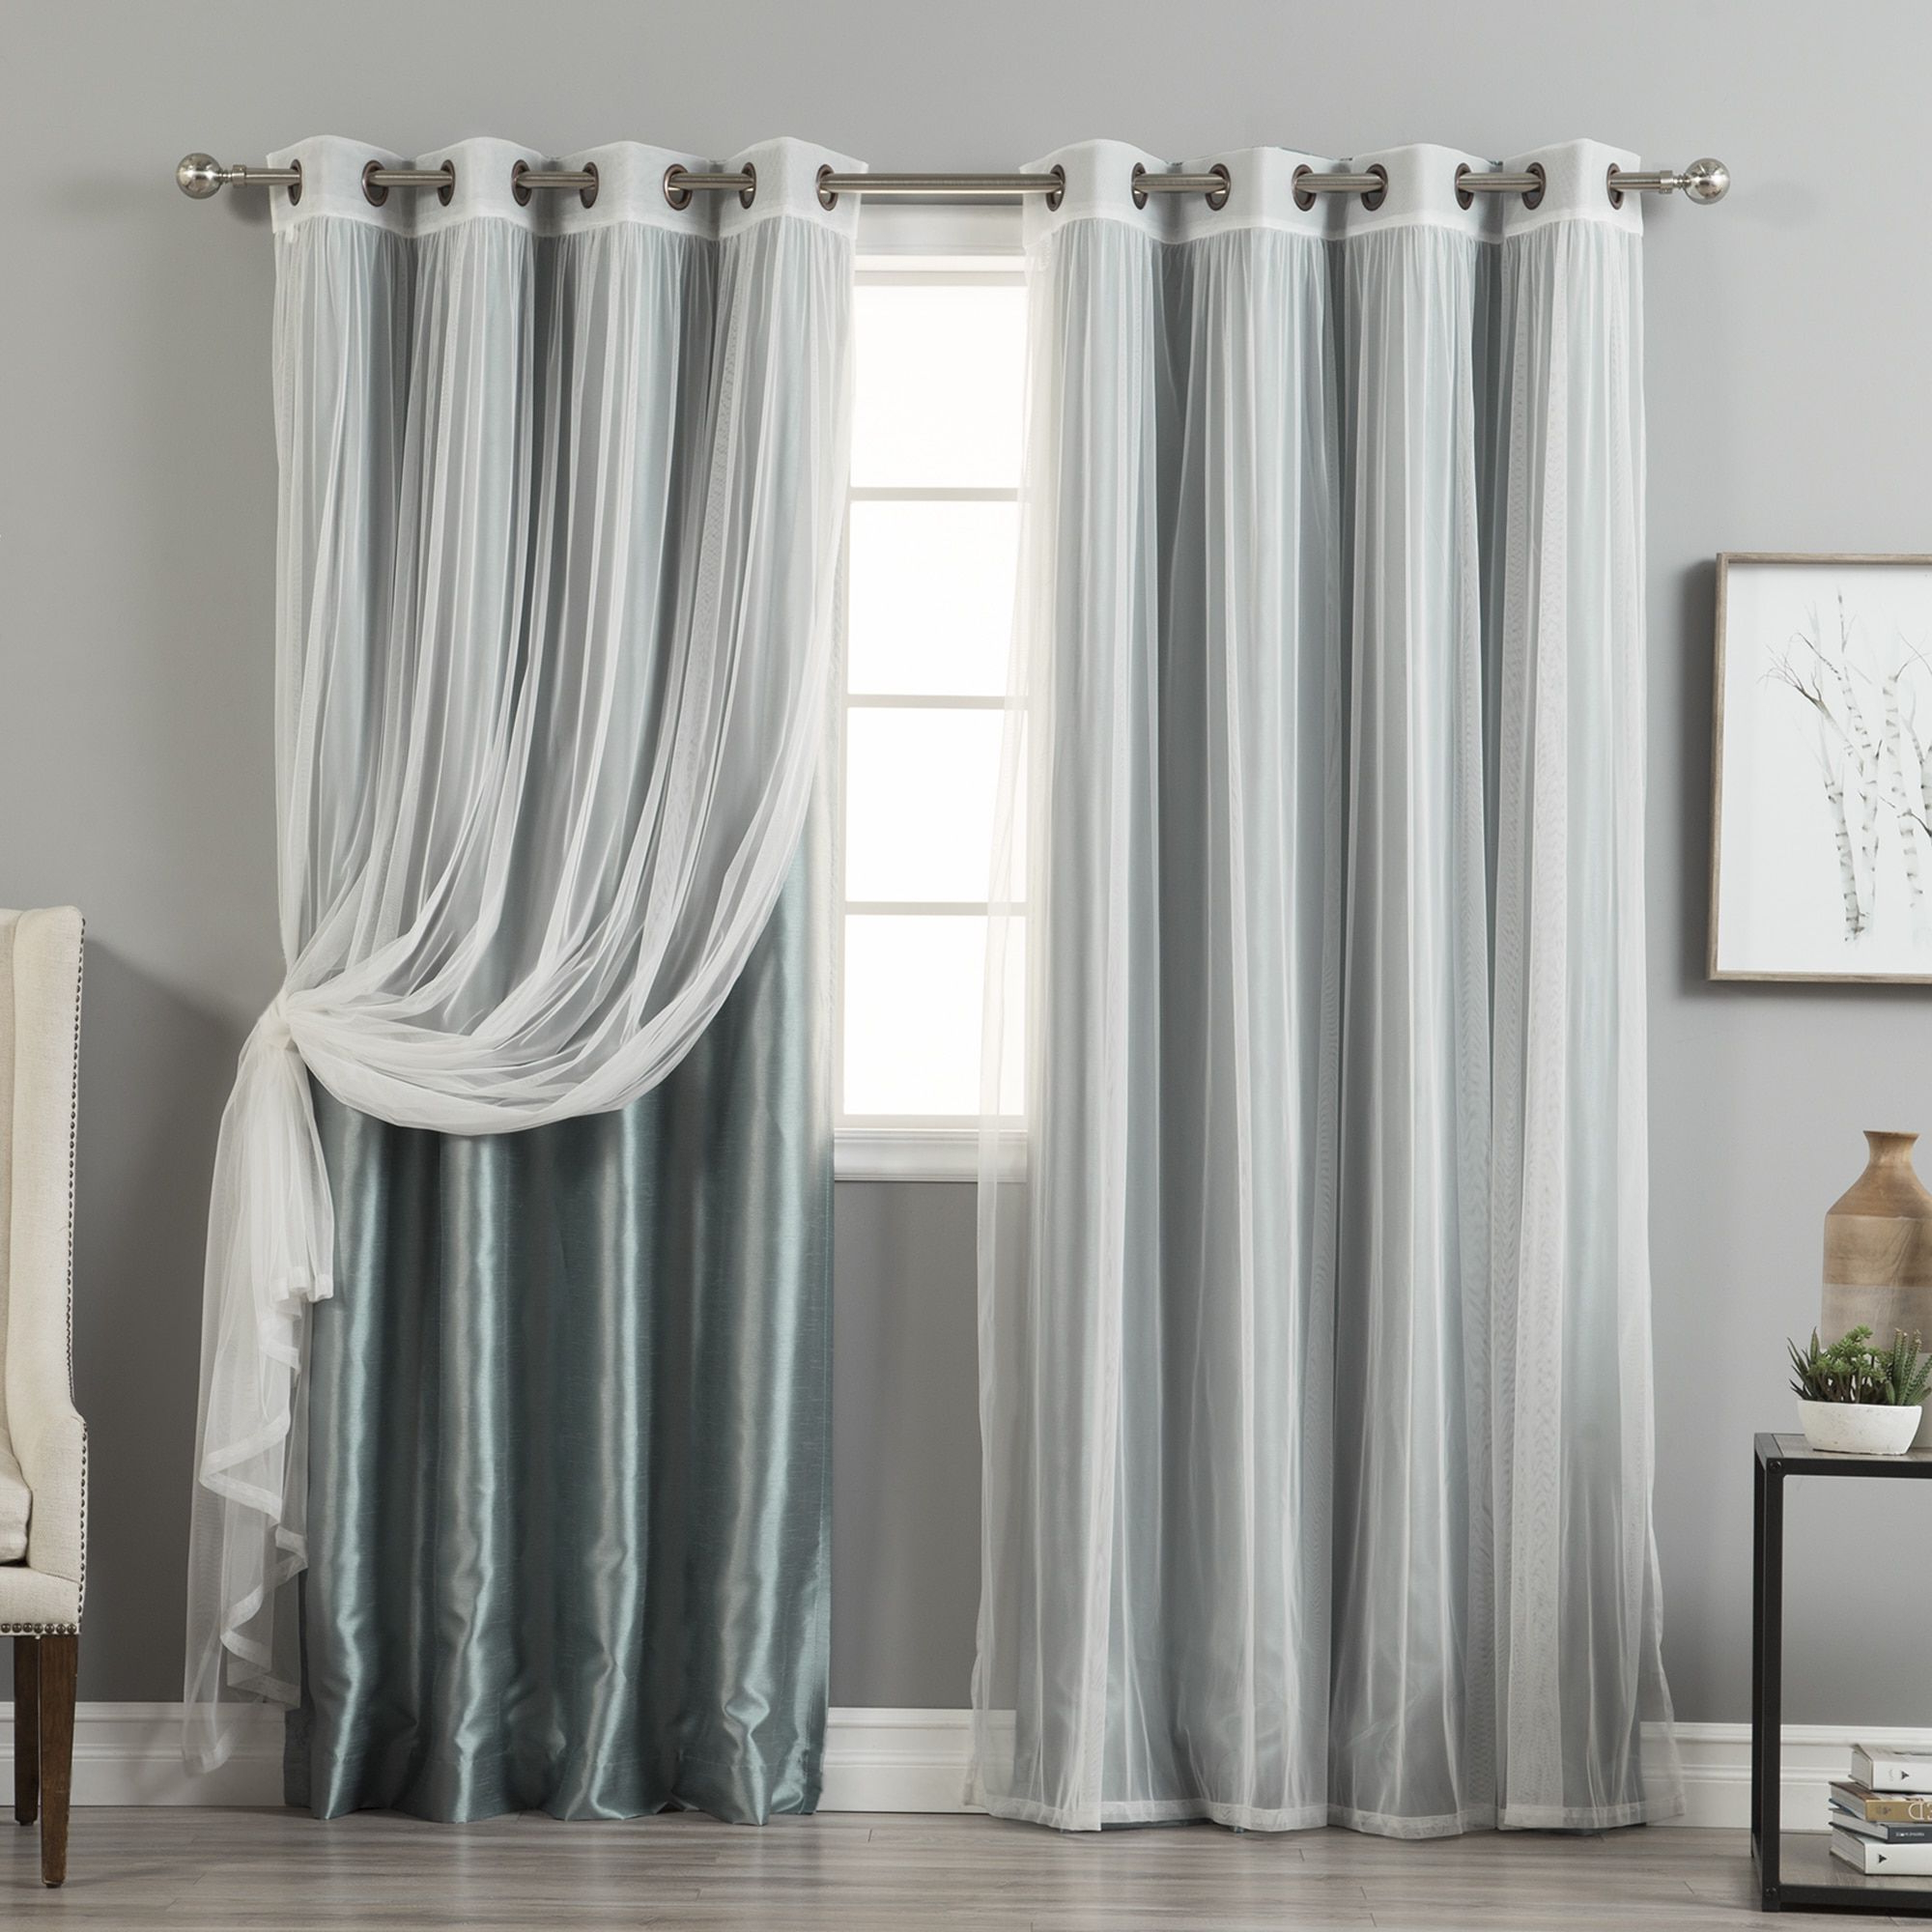 Favorite Aurora Home Mix & Match Curtains Faux Silk Blackout Tulle Pertaining To Mix & Match Blackout Tulle Lace Bronze Grommet Curtain Panel Sets (Gallery 10 of 20)